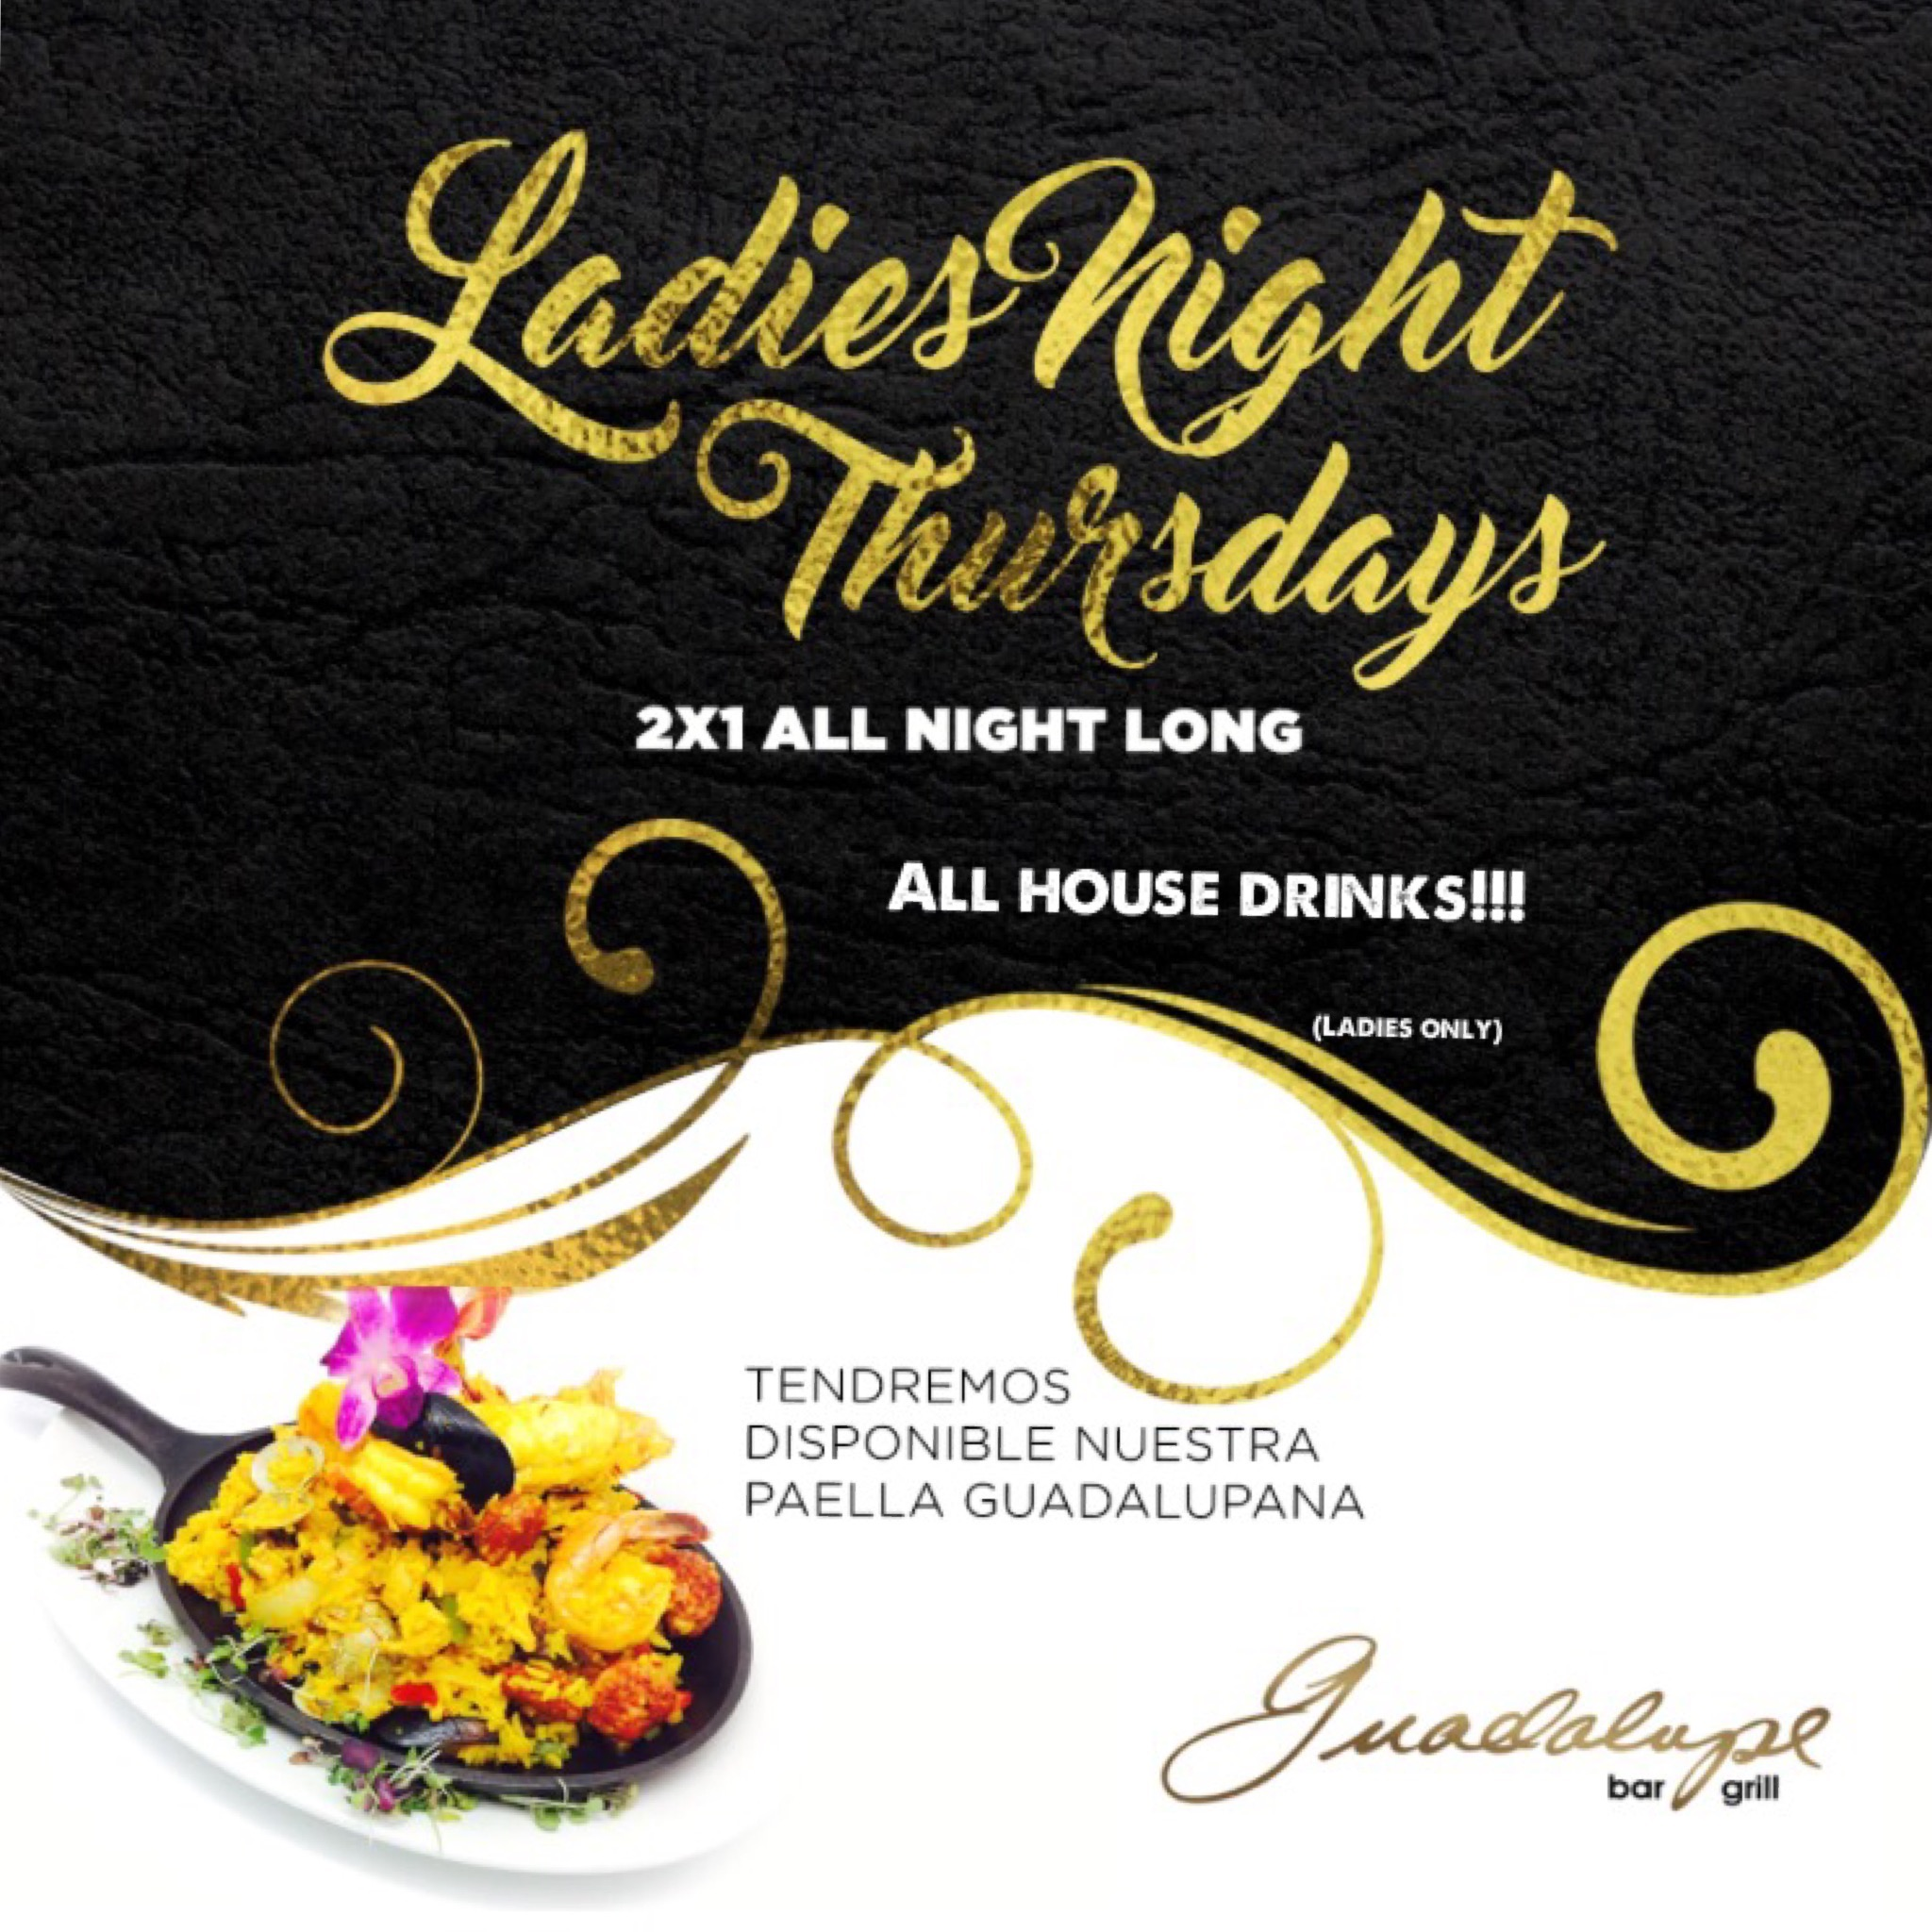 2x1 ladies night